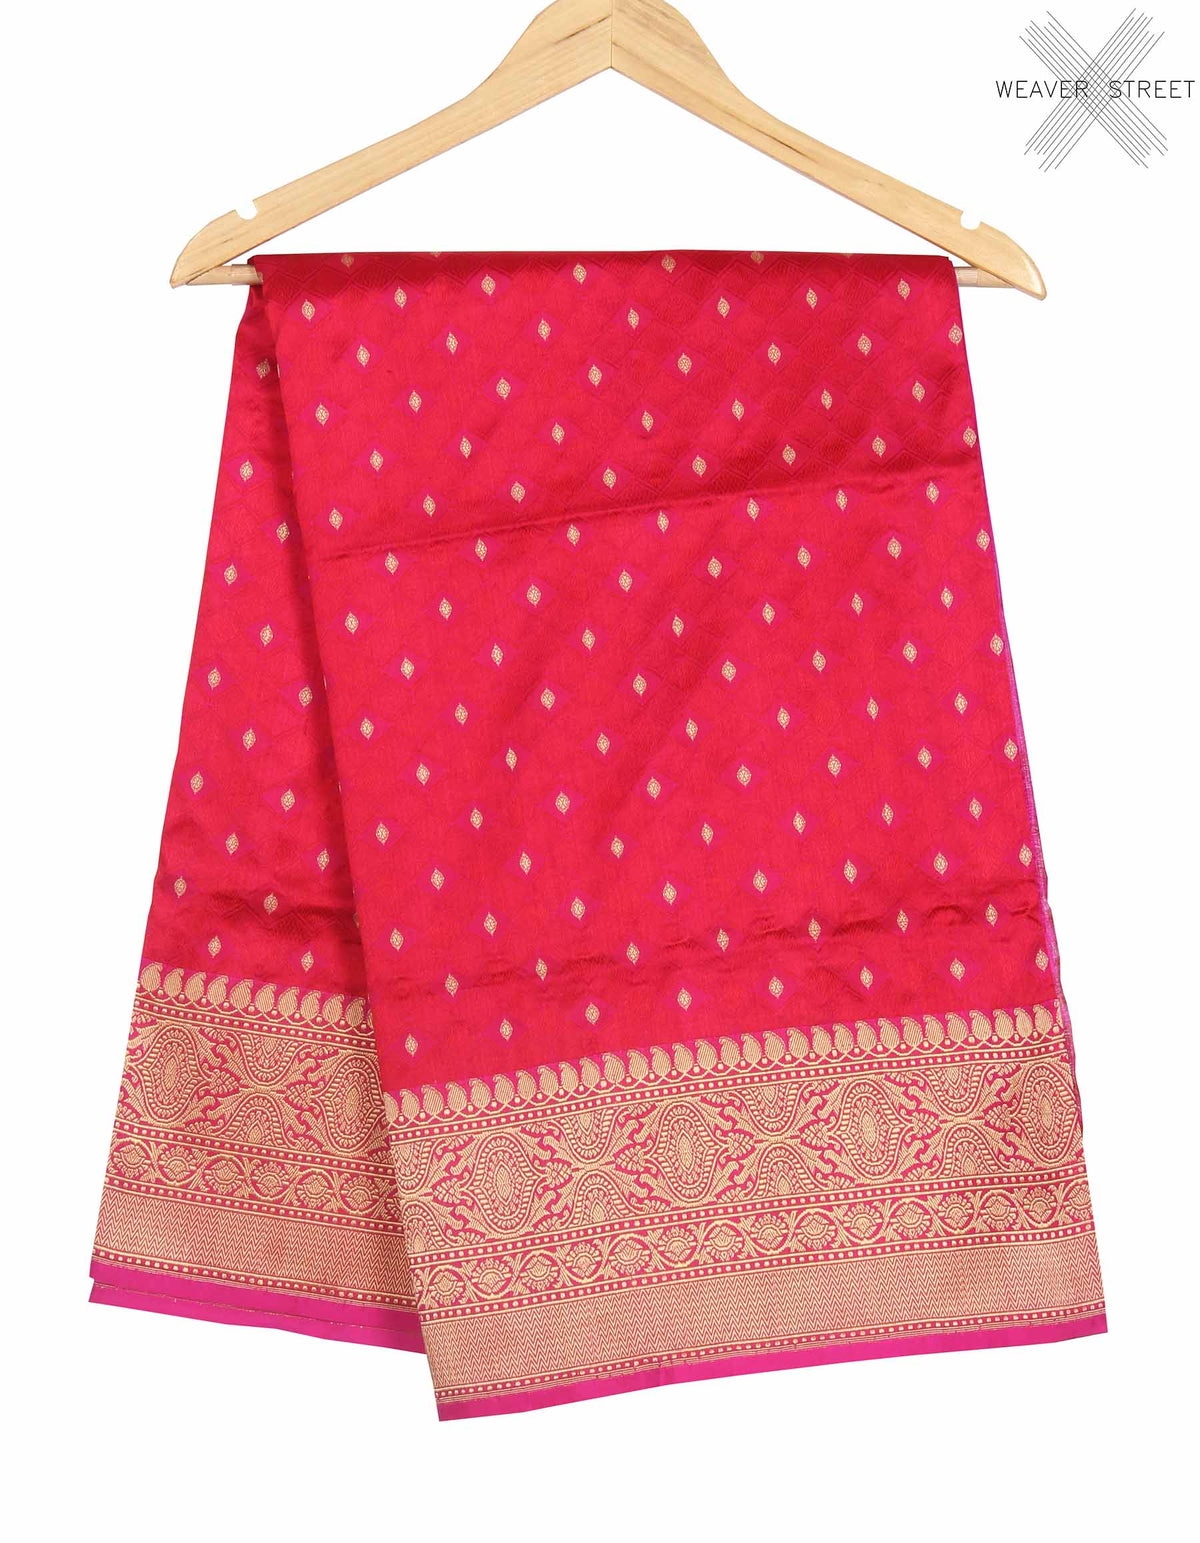 Red Katan Silk Handwoven Banarasi saree with meenedar tanchoi weave (1) main